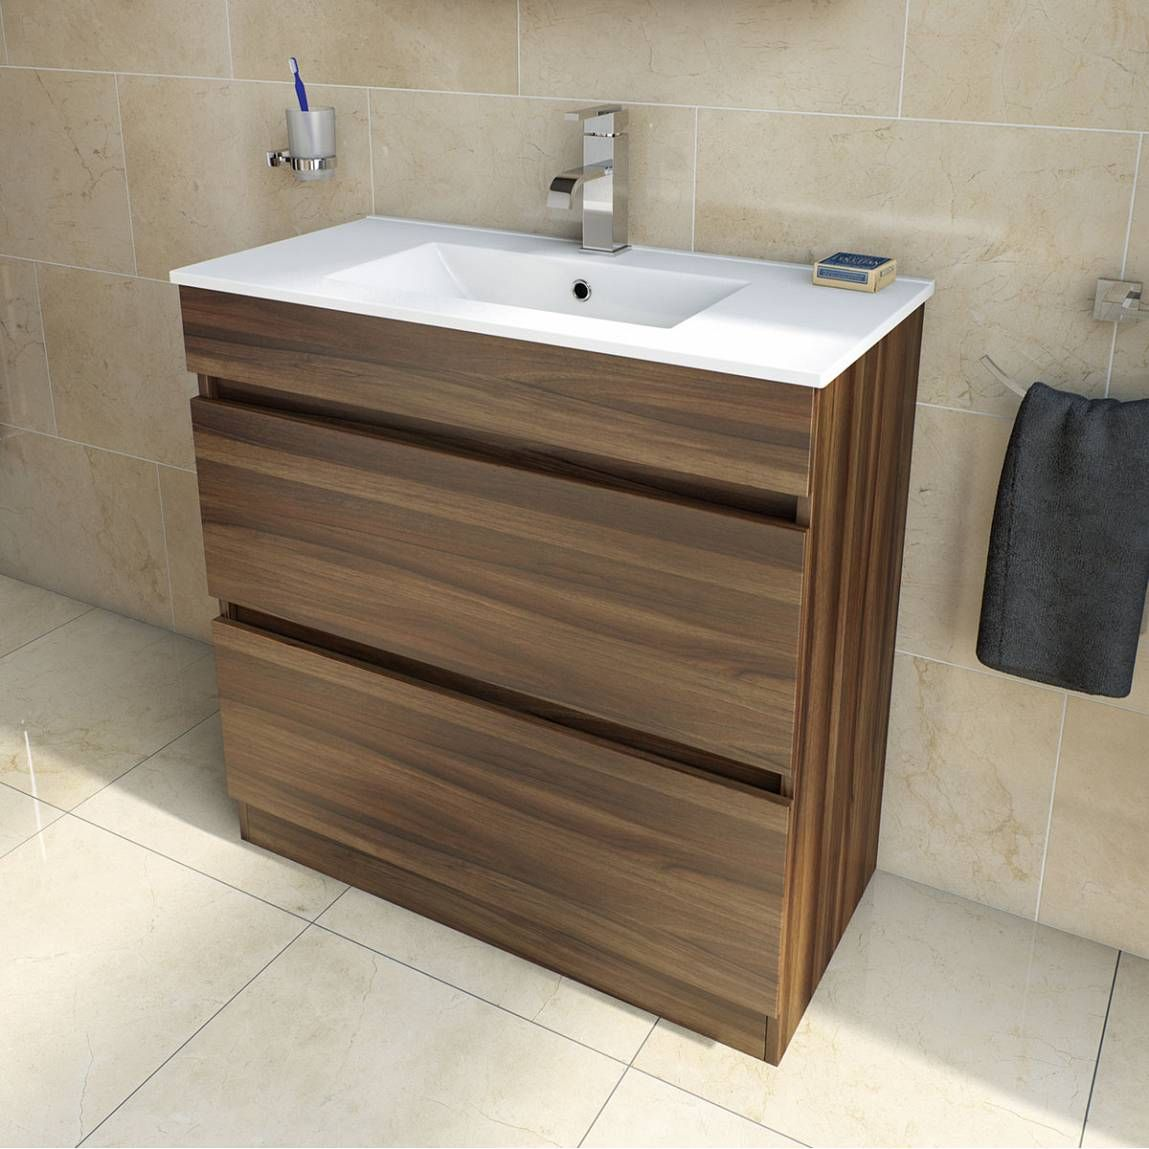 Bathroom Lights Victoria Plumb plan walnut vanity drawer unit and basin 800mm | walnut floors